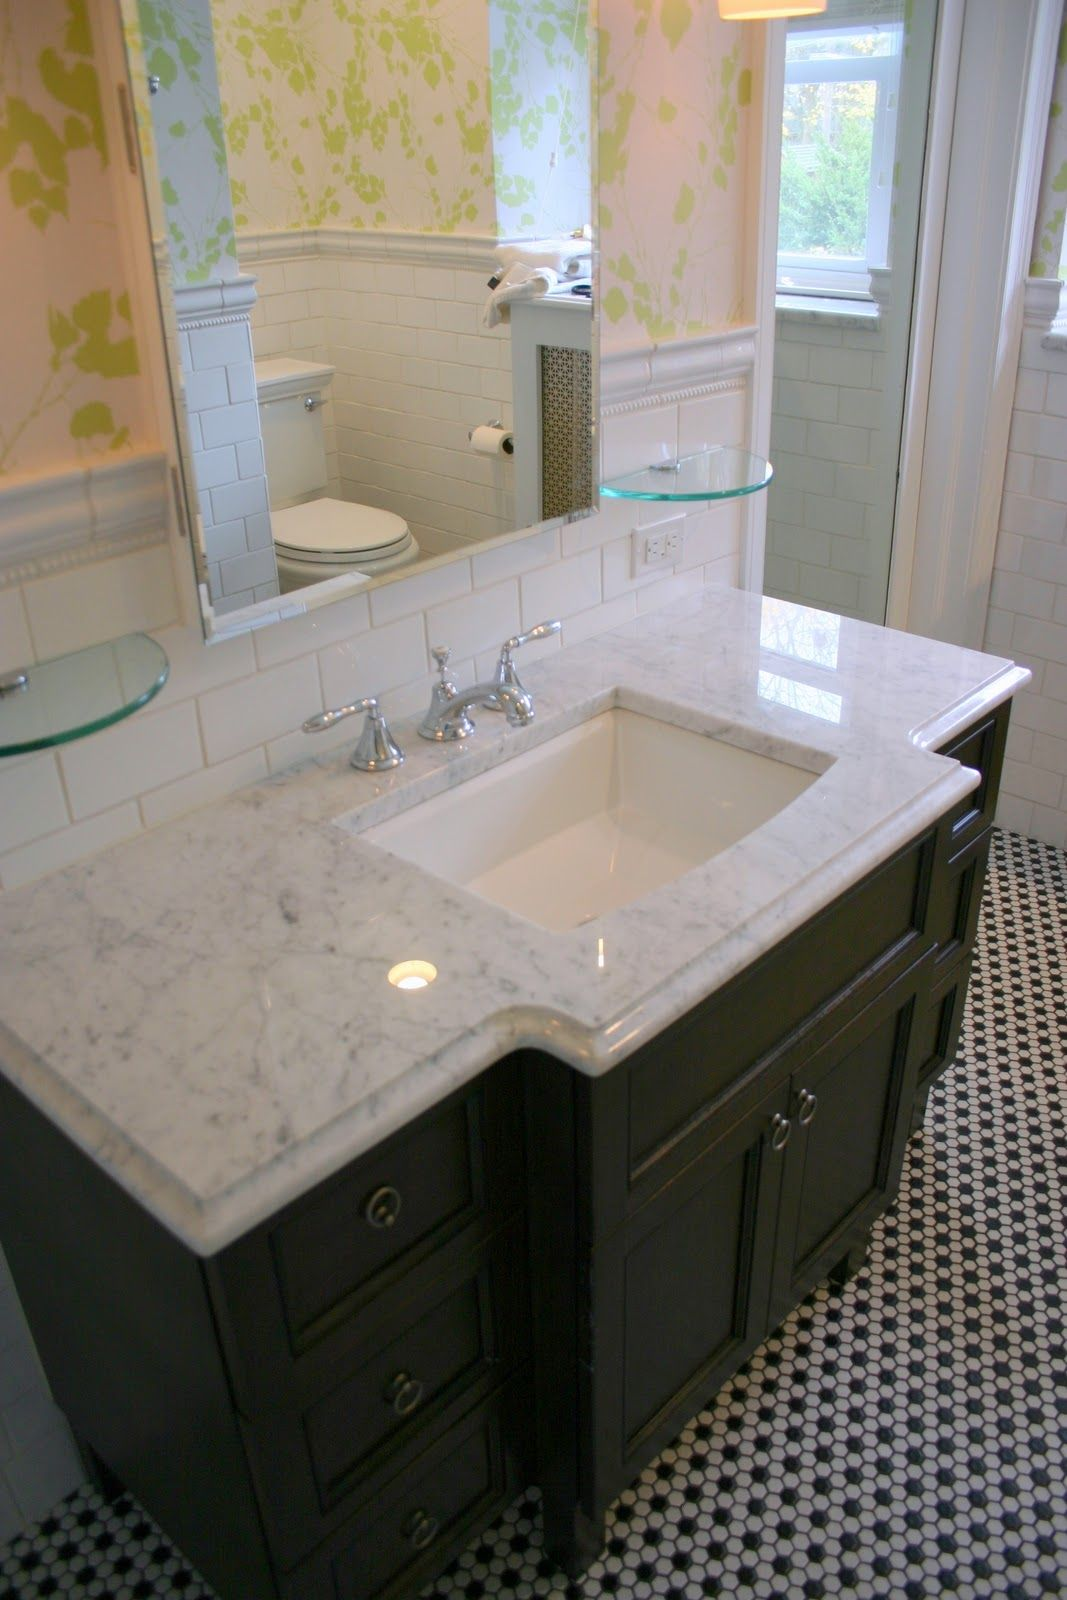 Small bathroom hexagon floor tile ideas bathroom marble bathroom vanities design ideas elegant Bathroom design ideas with marble